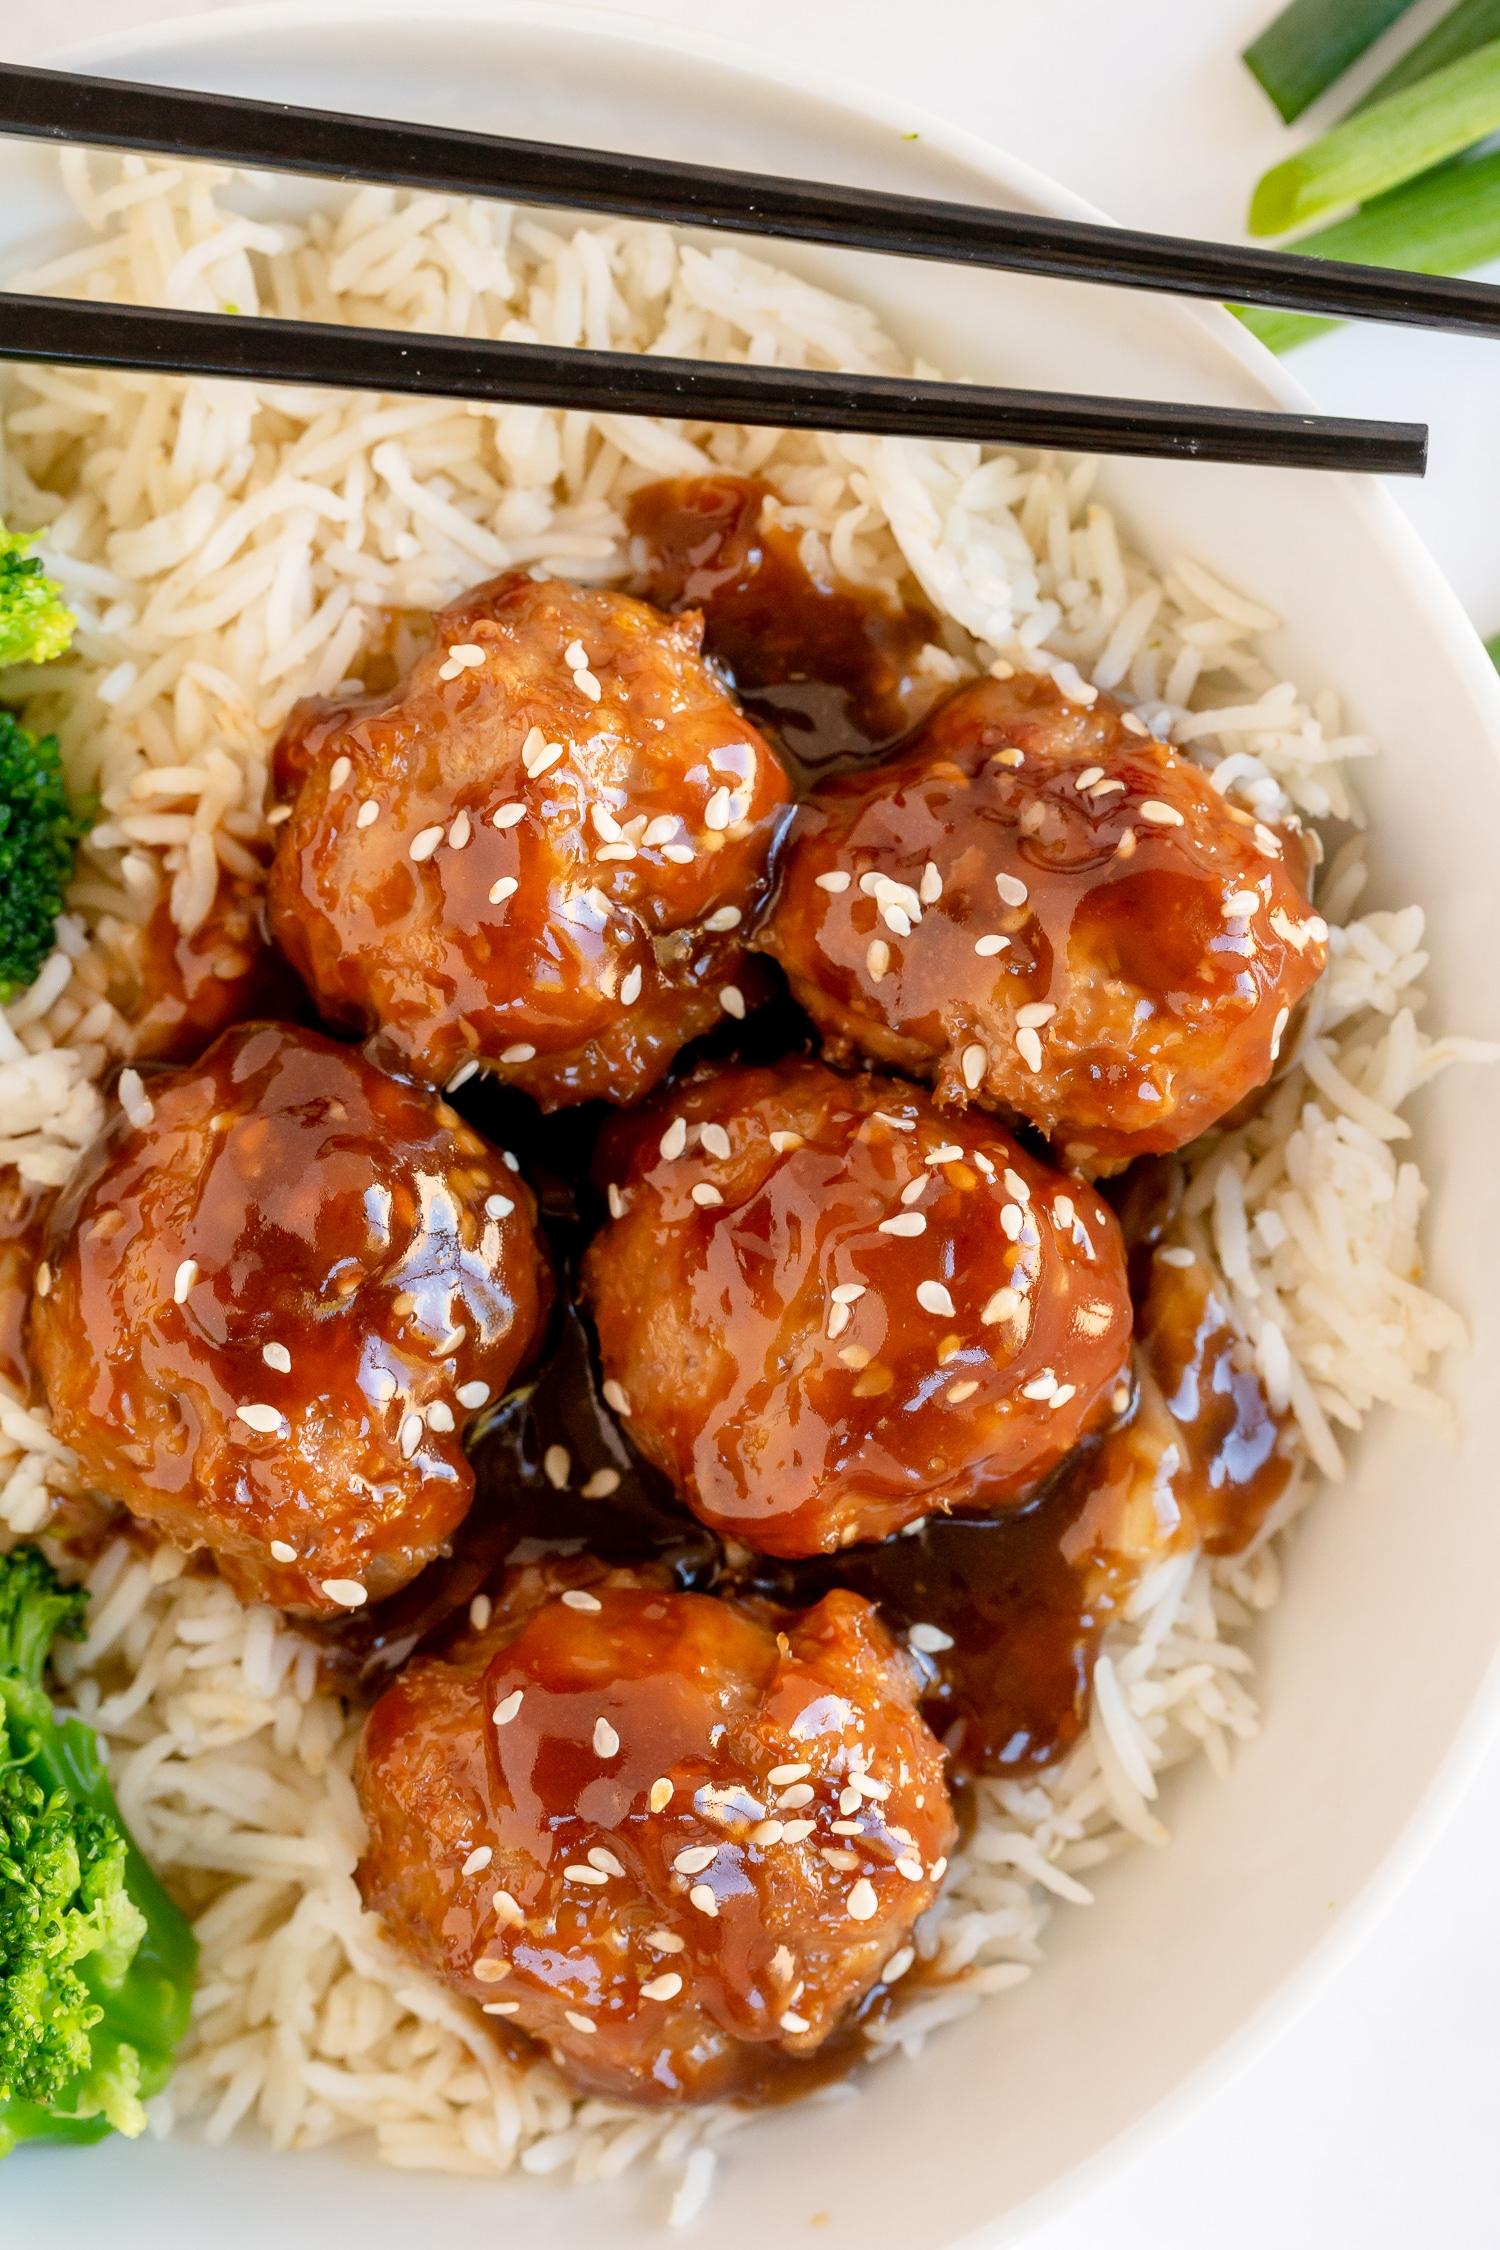 Teriyaki Turkey Meatballs are a delicious dinner that is bursting with flavor from a homemade Teriyaki sauce! Serve over rice or eat them all on their own.